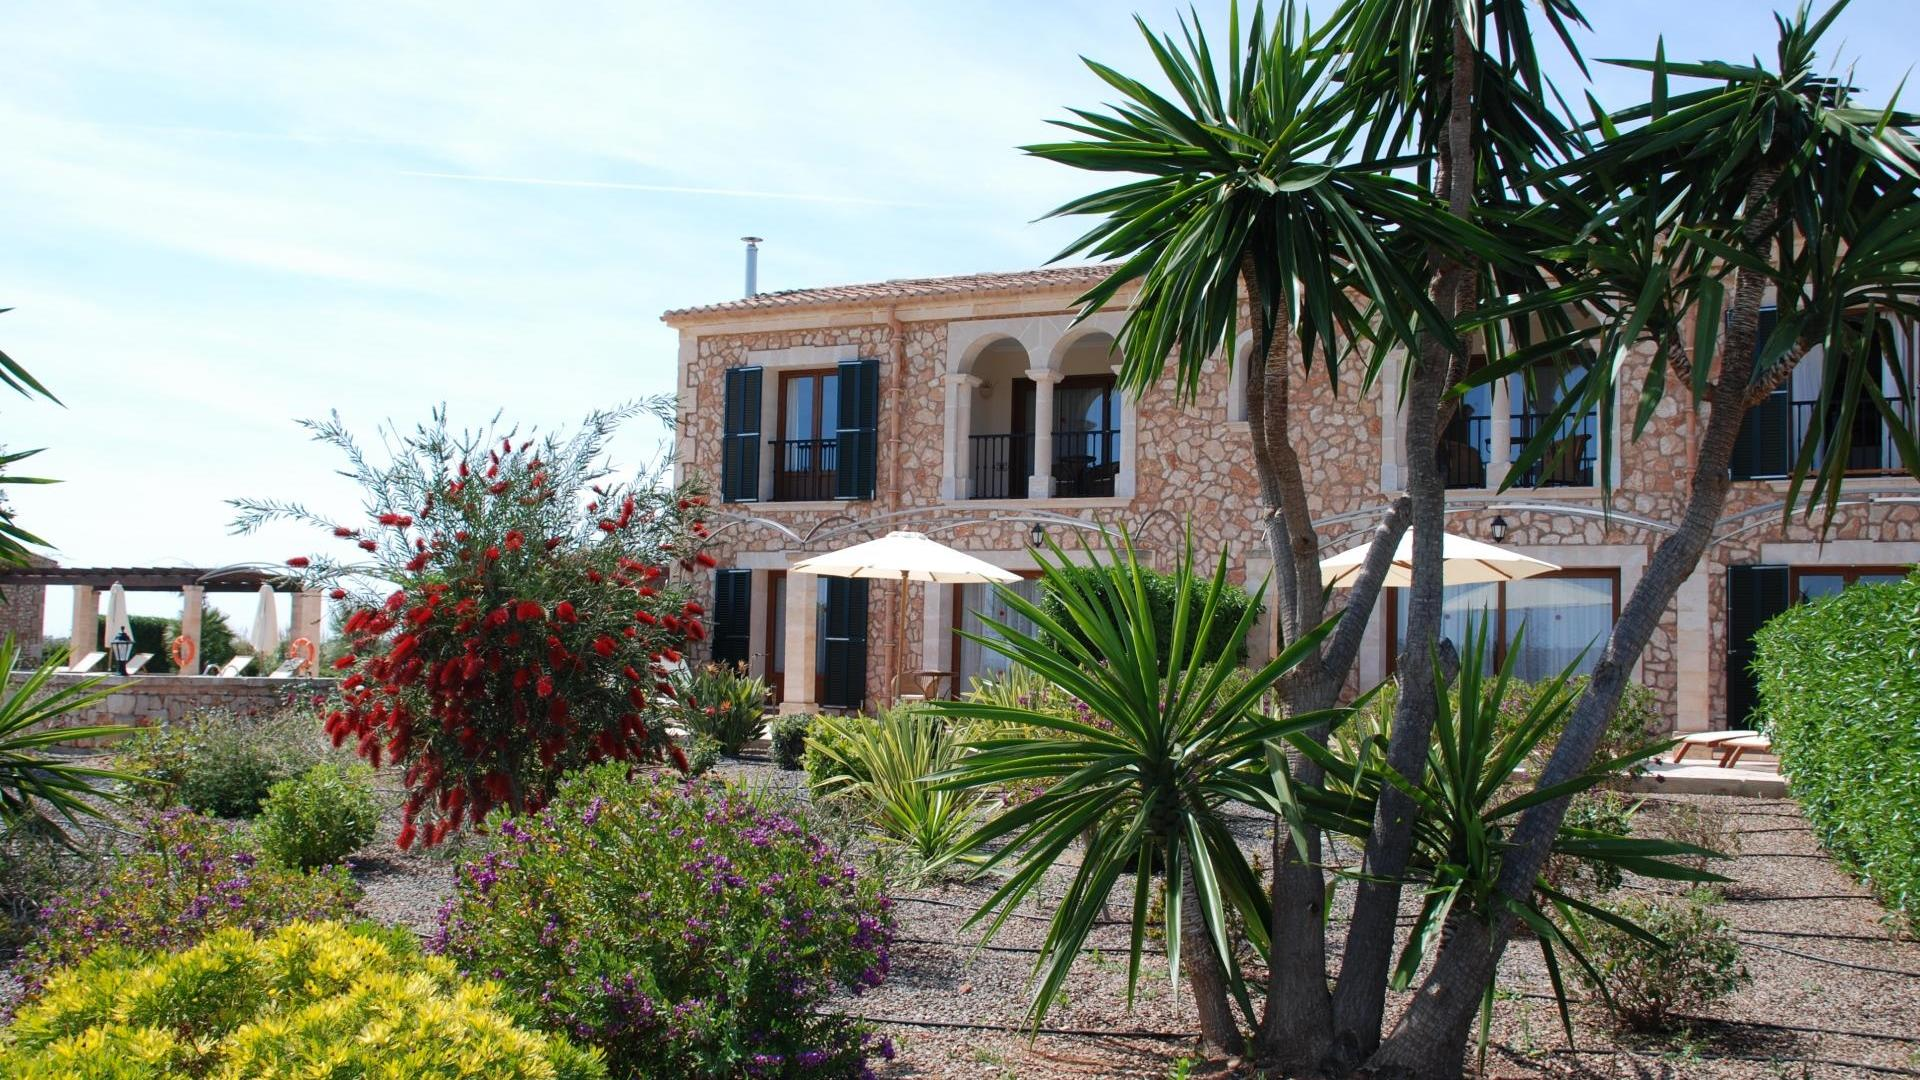 A family friendly hotel close to beaches in southern Mallorca